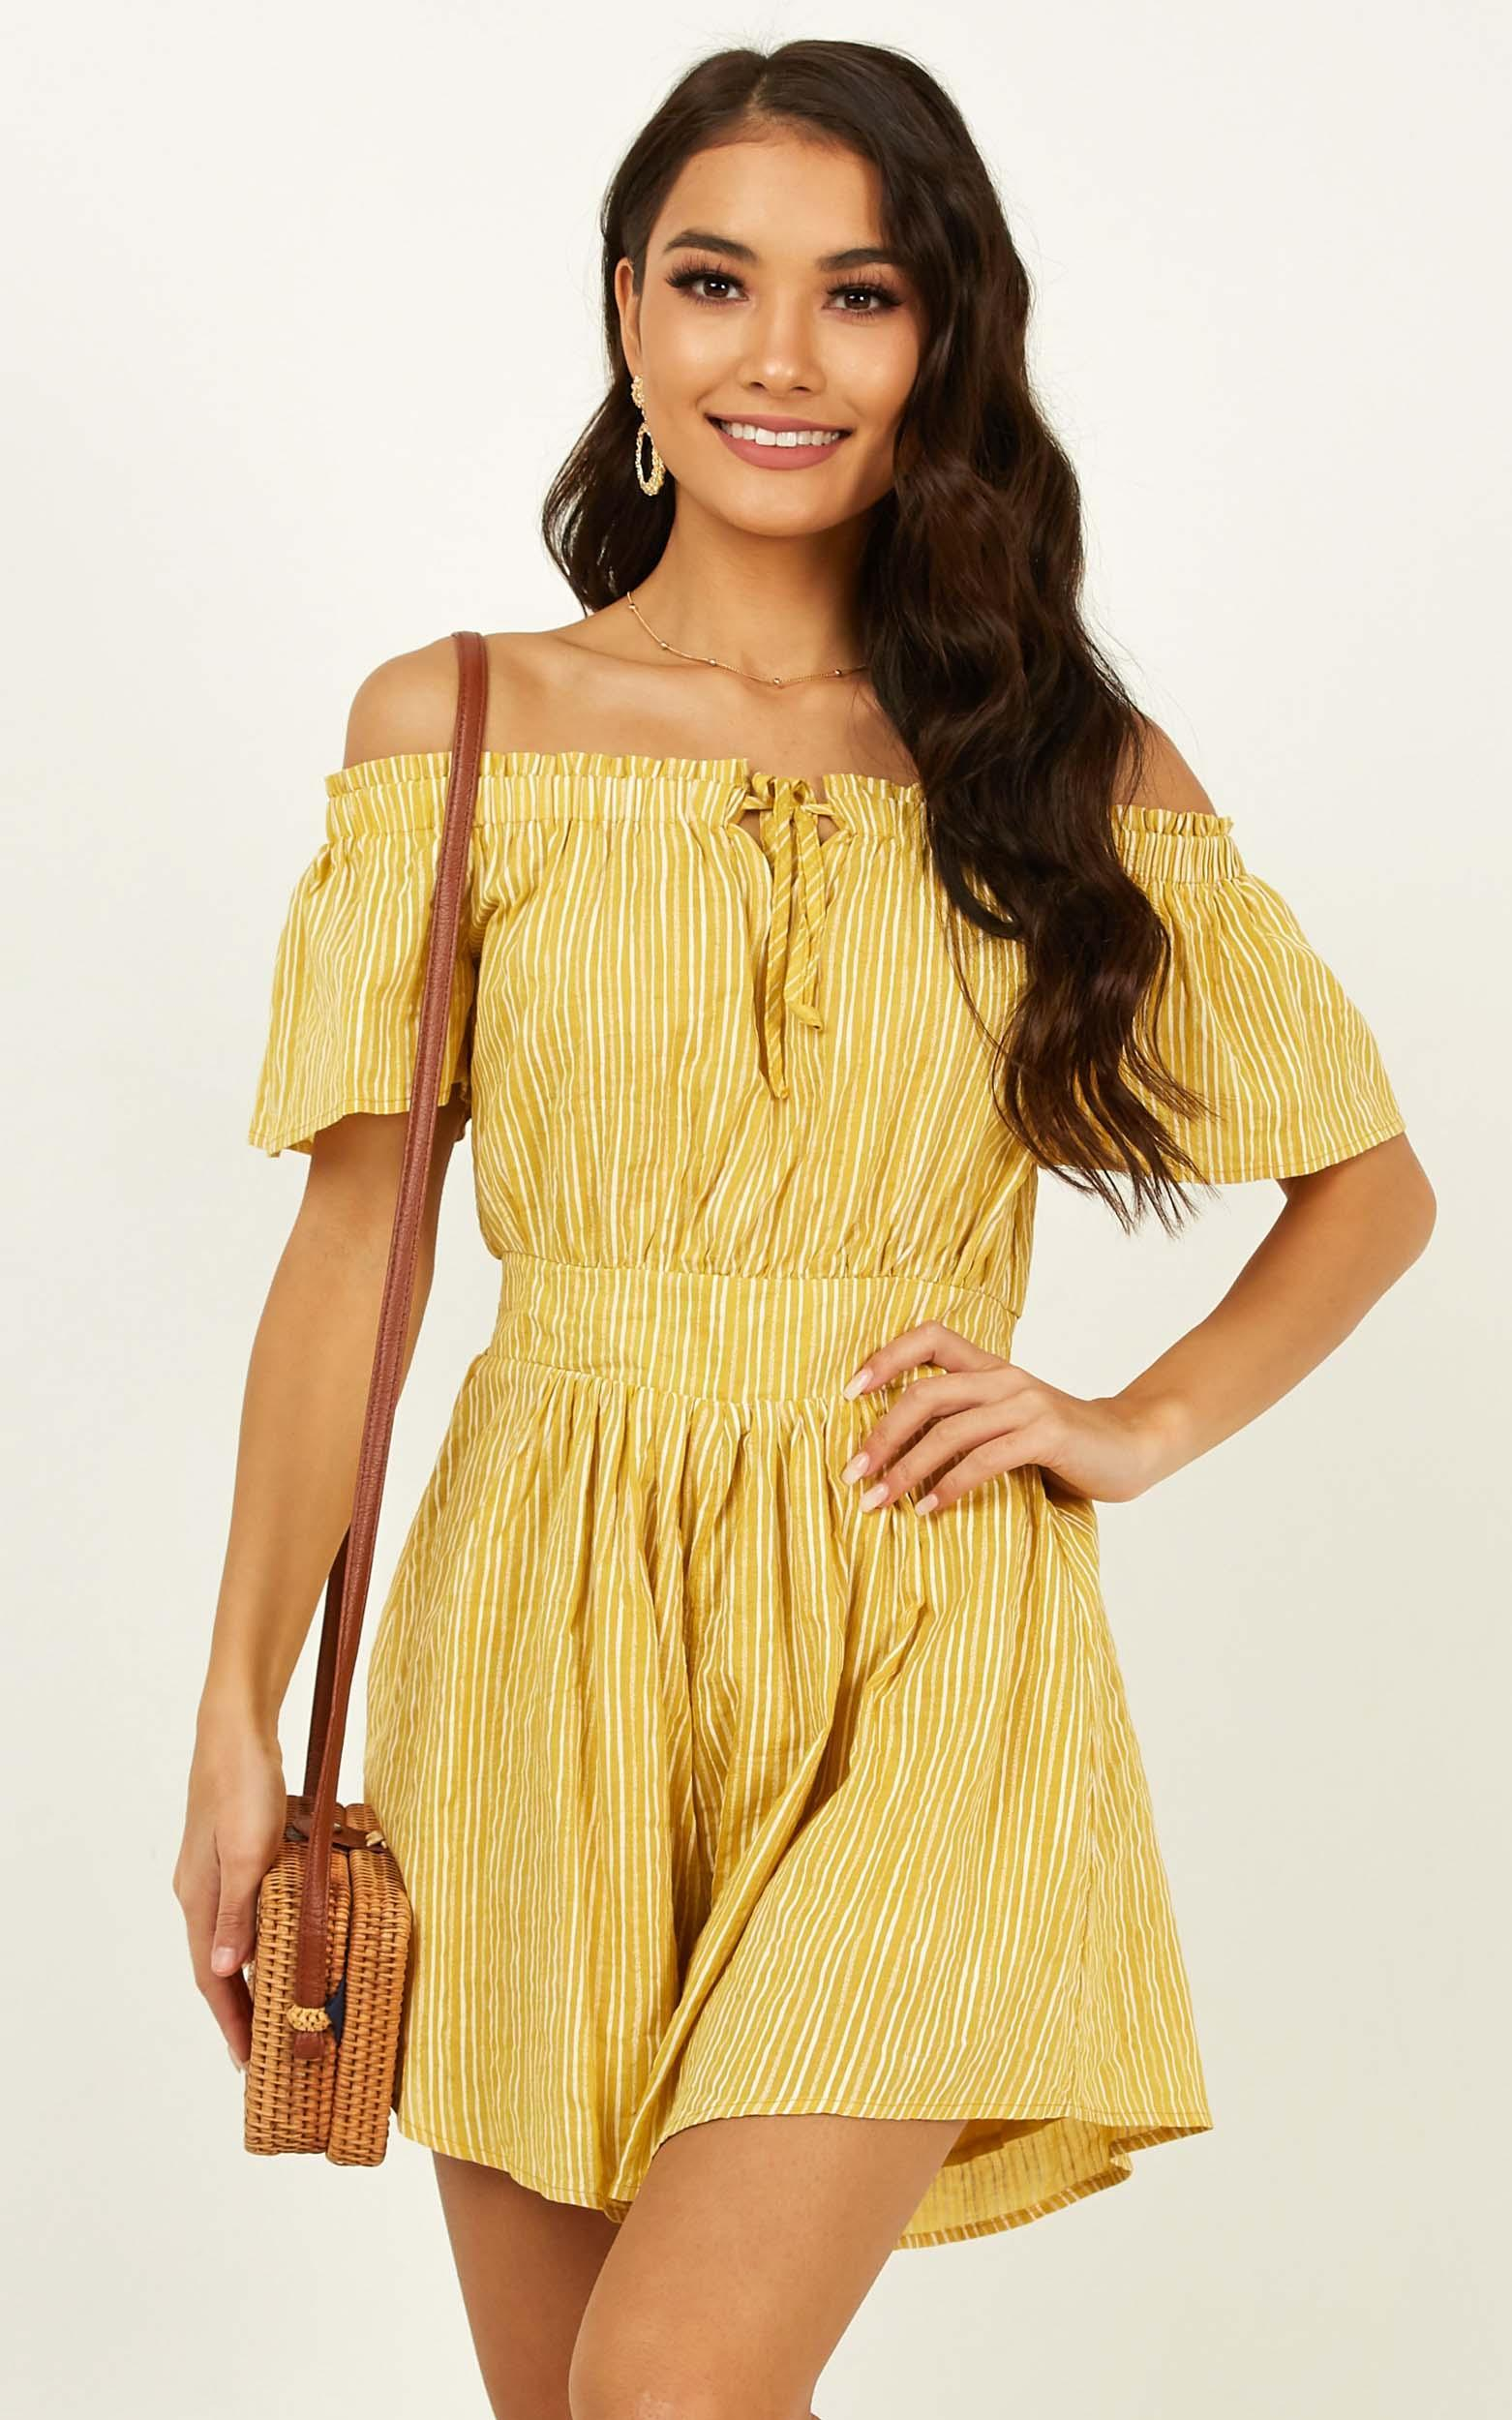 Through To You Playsuit in yellow stripe - 20 (XXXXL), Yellow, hi-res image number null